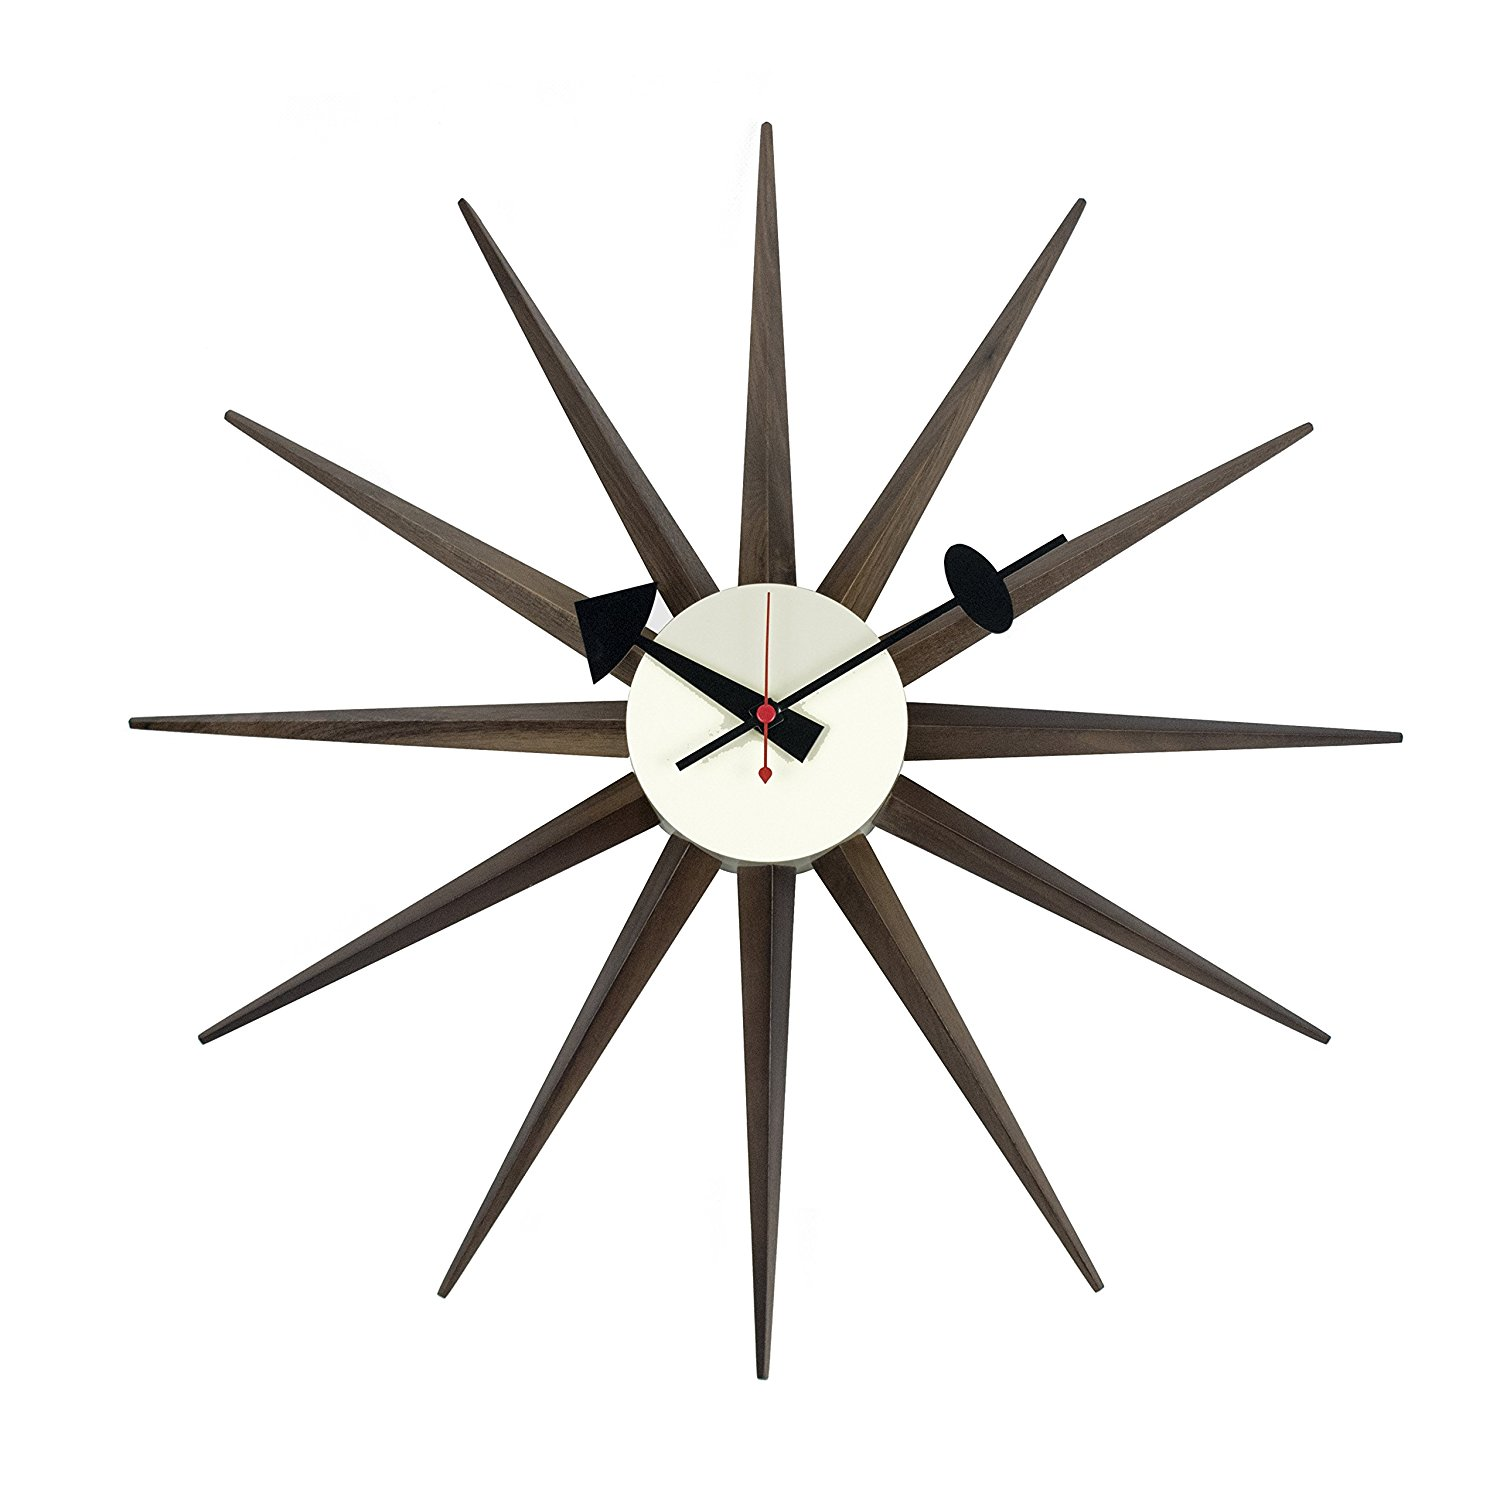 LCH Walnut Wood Sunburst Clock, Handmade Antique Retro Classic Mid-Century Modern Wall Clock, Designed by George Nelson